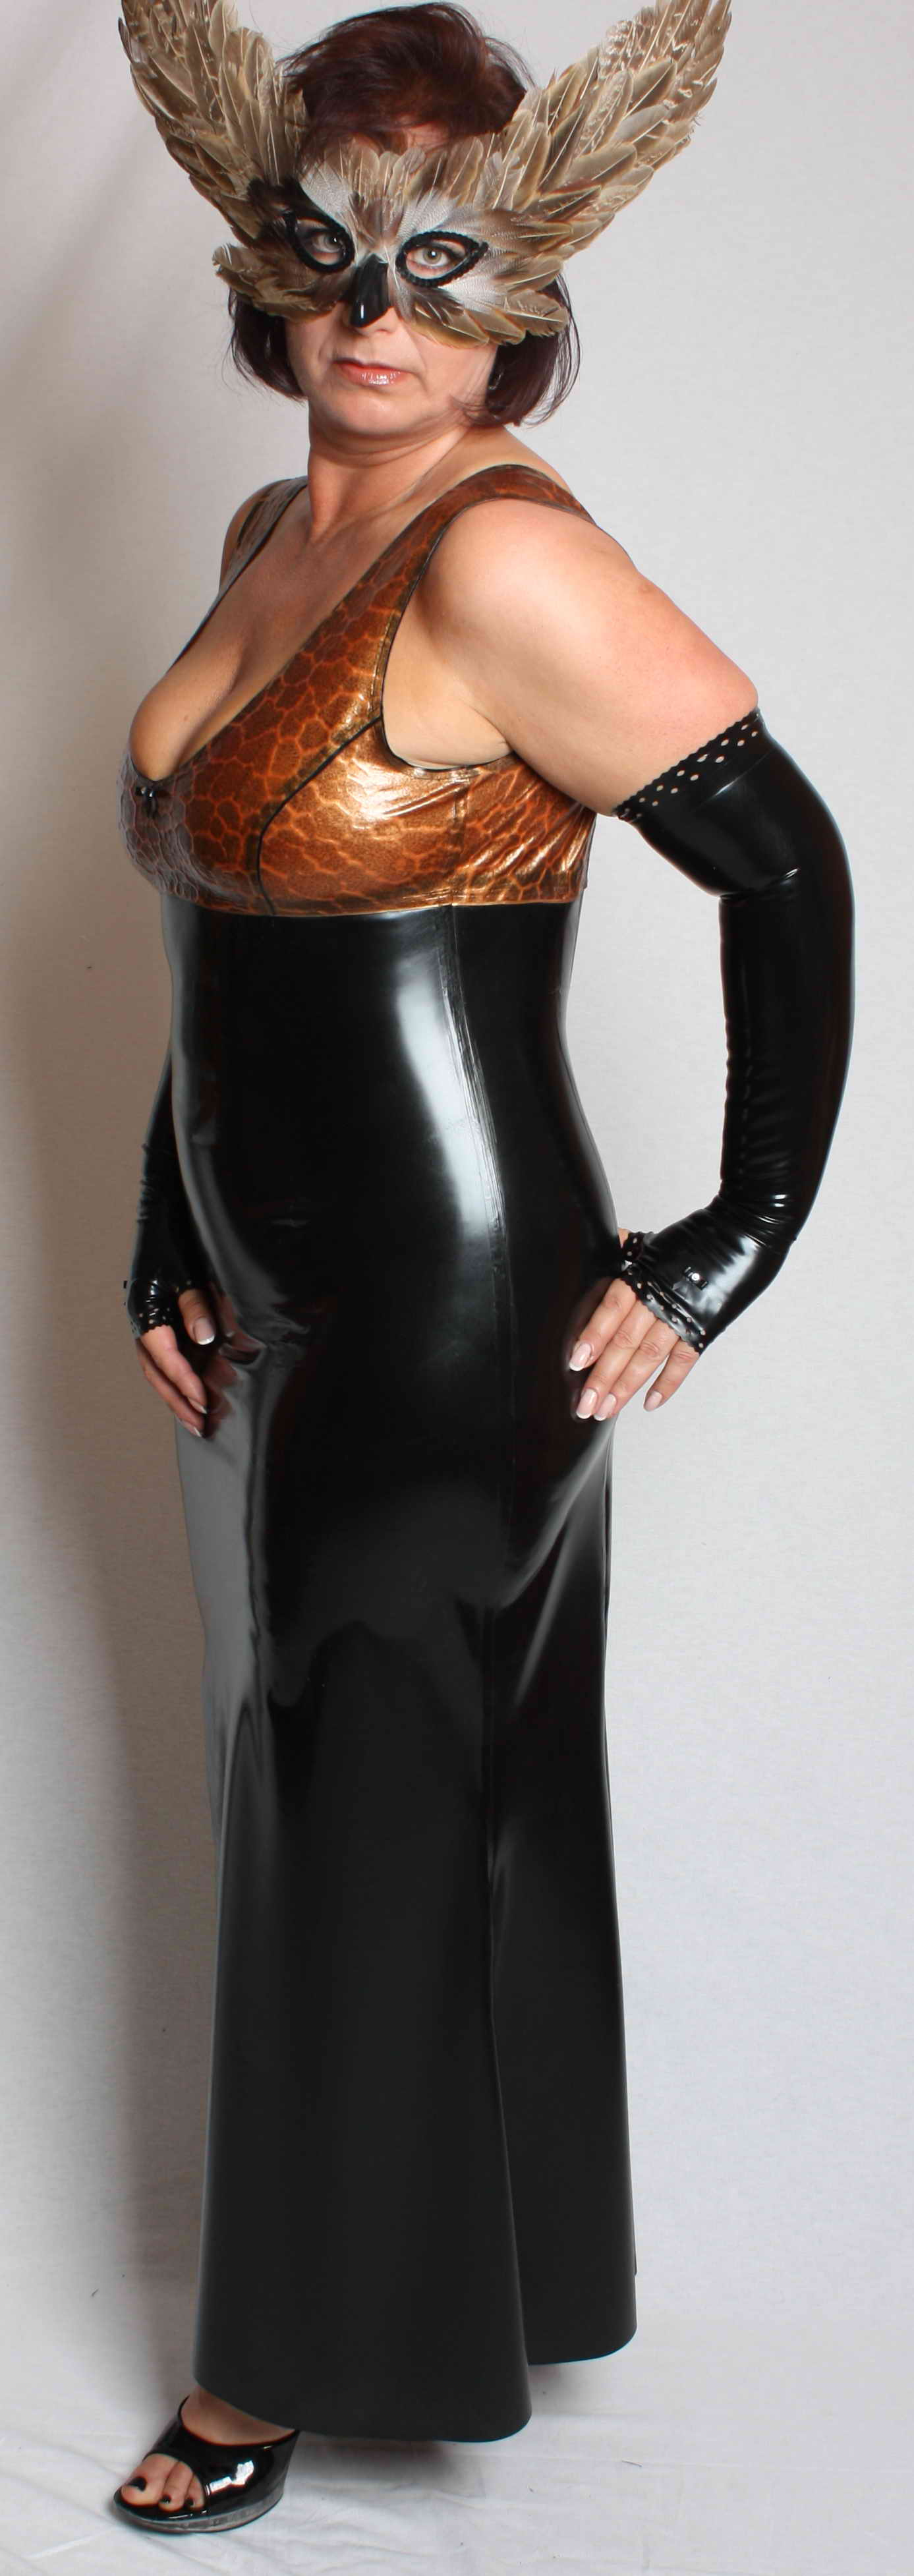 Mixed Pictures | Latex Line